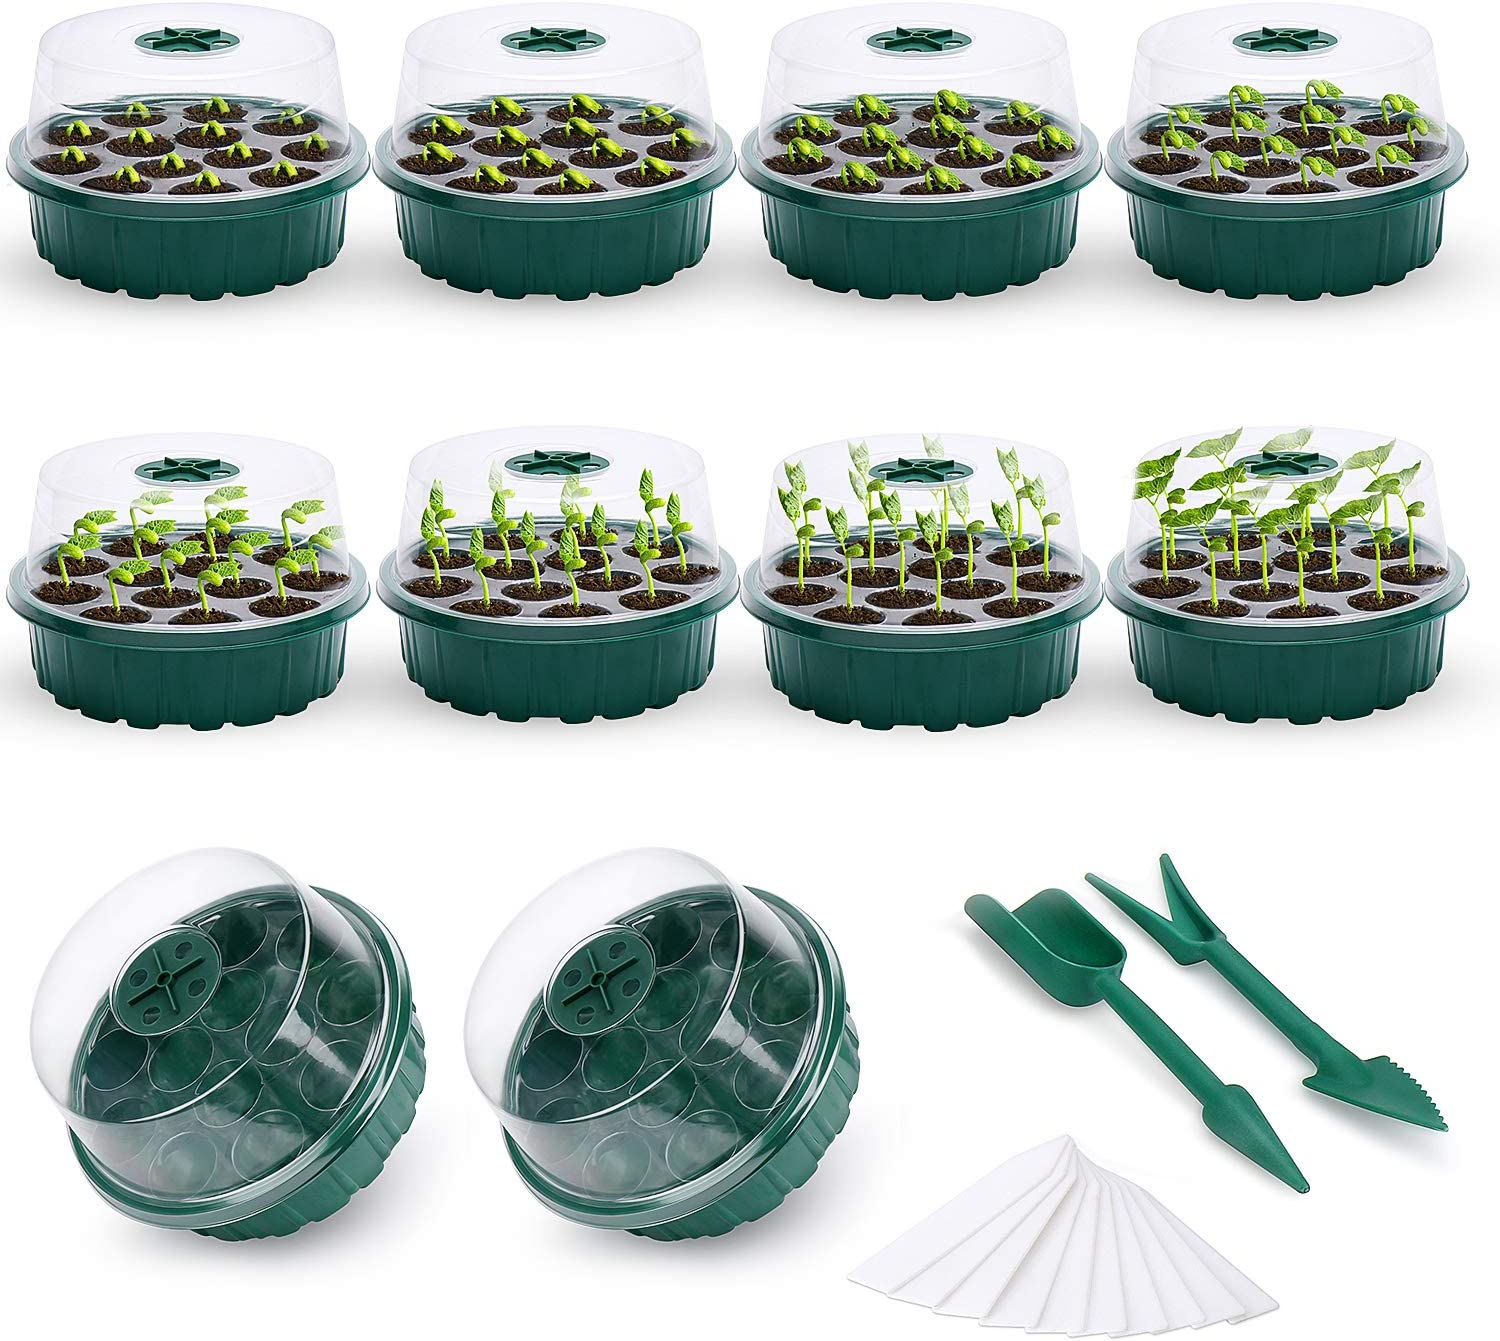 Auburet 10-Pack Seed Starter Tray Seedling Trays Plant Kit, 130 Cells Clear Seeding Starter Tray with Dome Humidity Adjustable, Plant Tags and Hand Tool, for Germination and Greenhouse Grow(10)